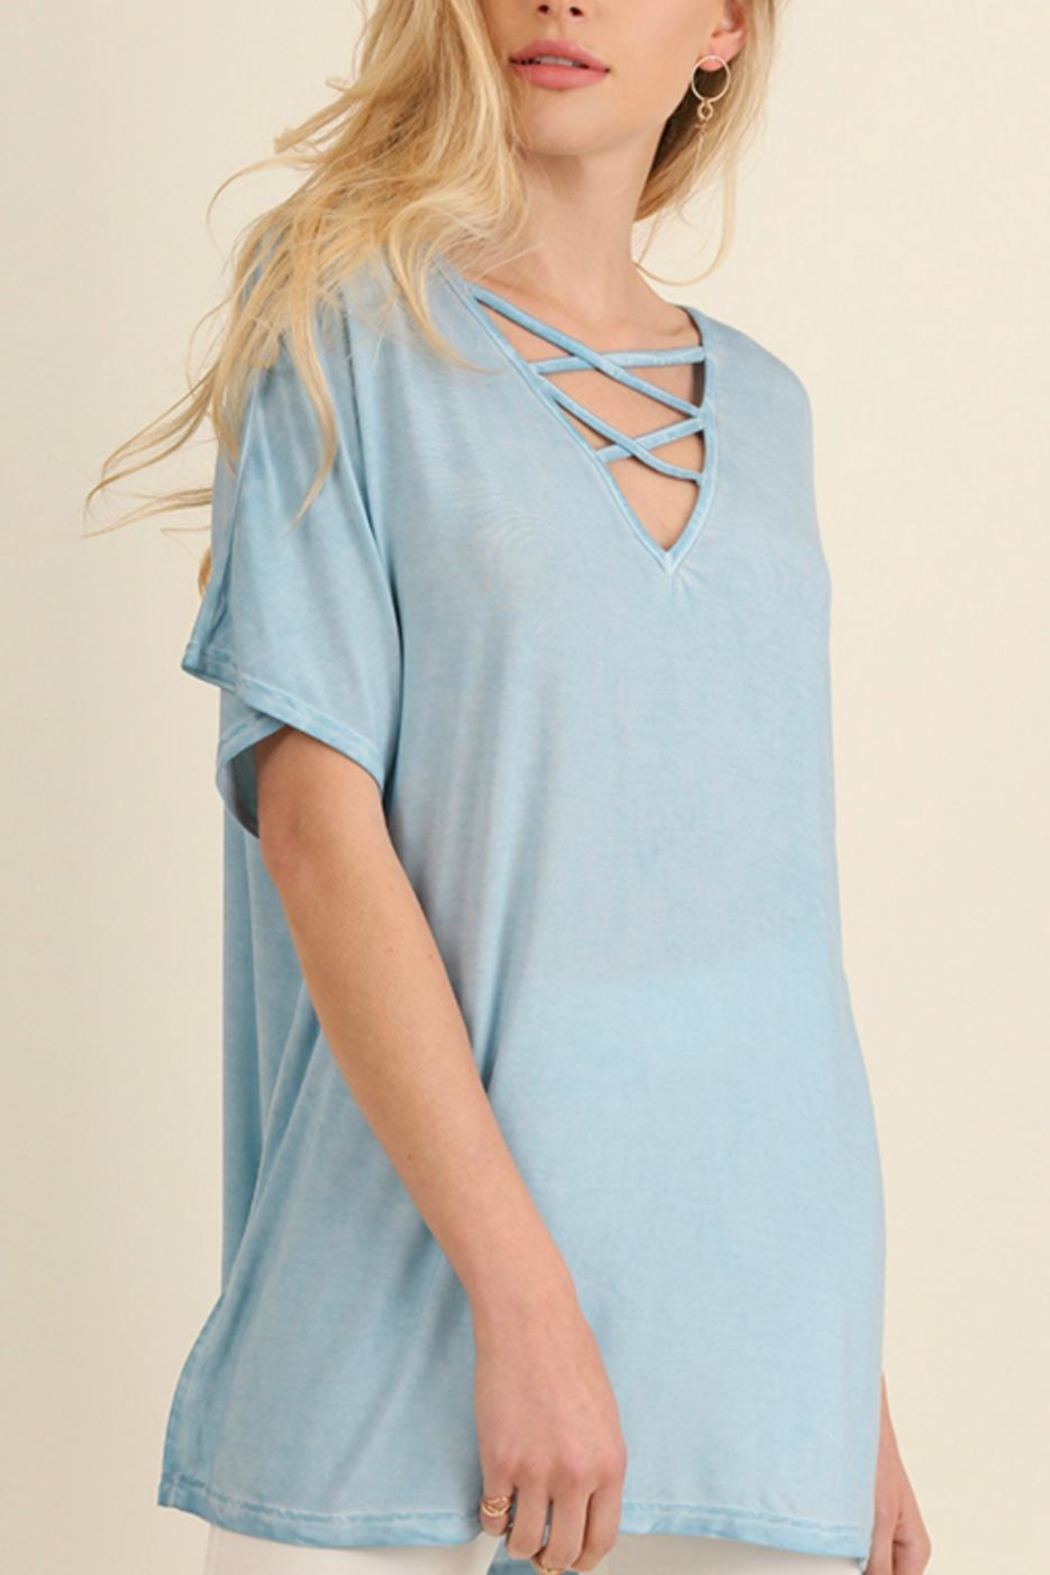 Umgee USA Washed Crisscross Top - Main Image